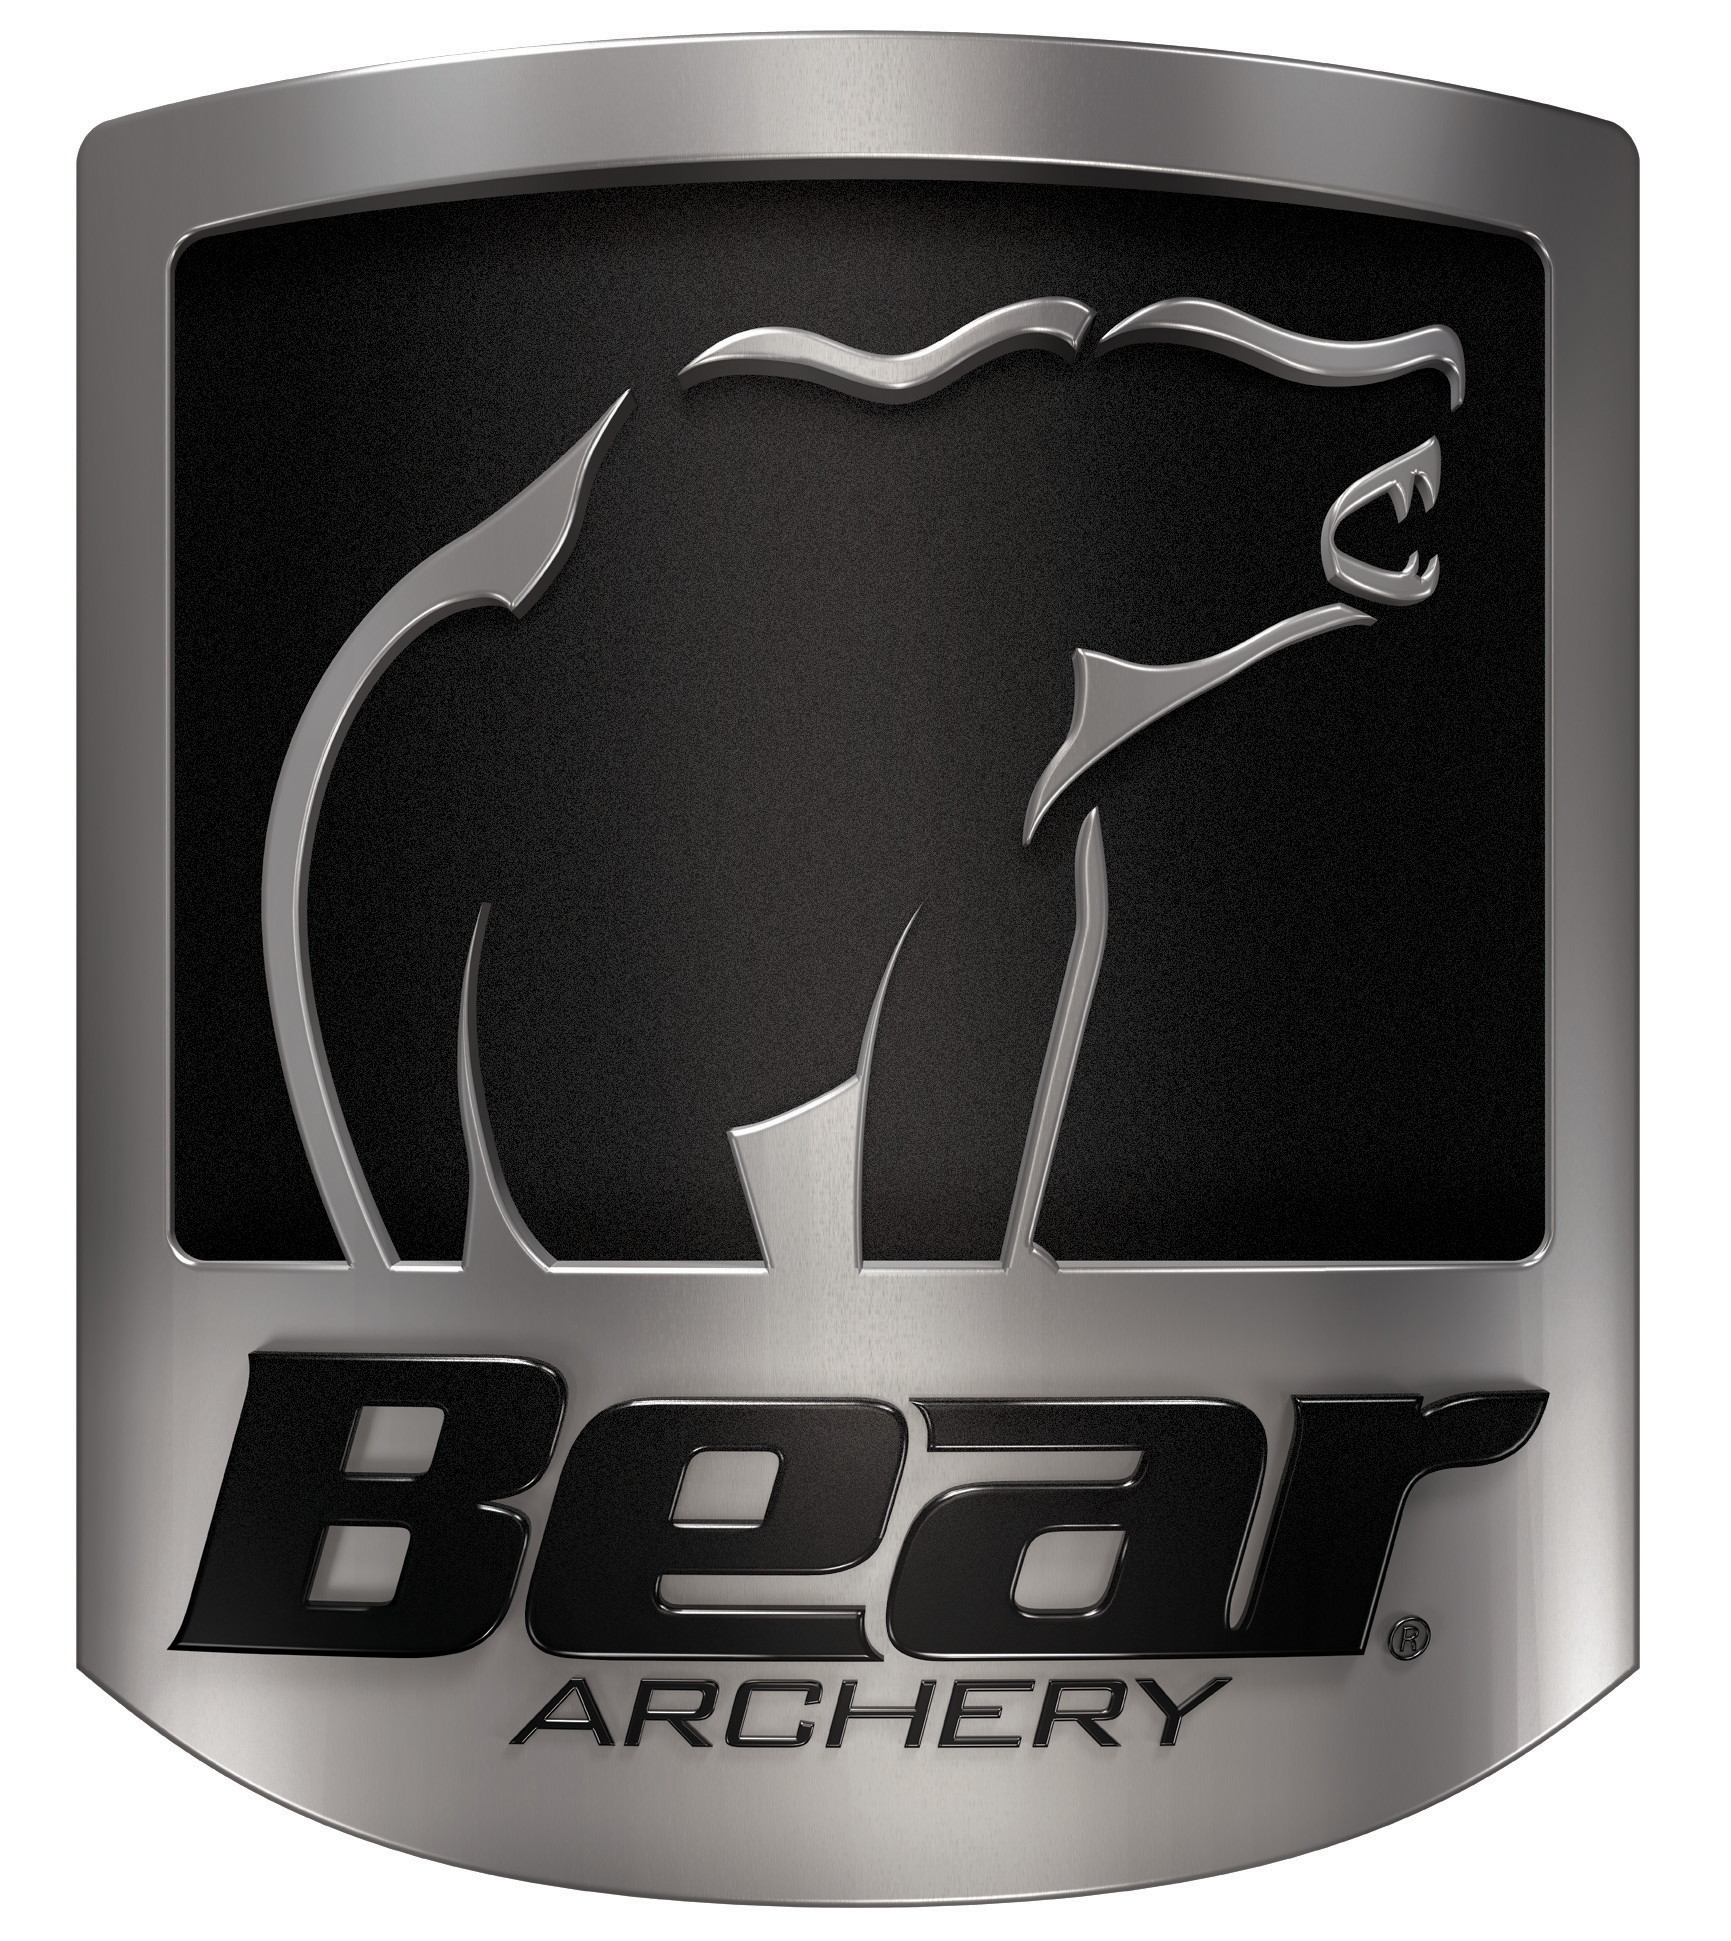 Bear Archery's Logo